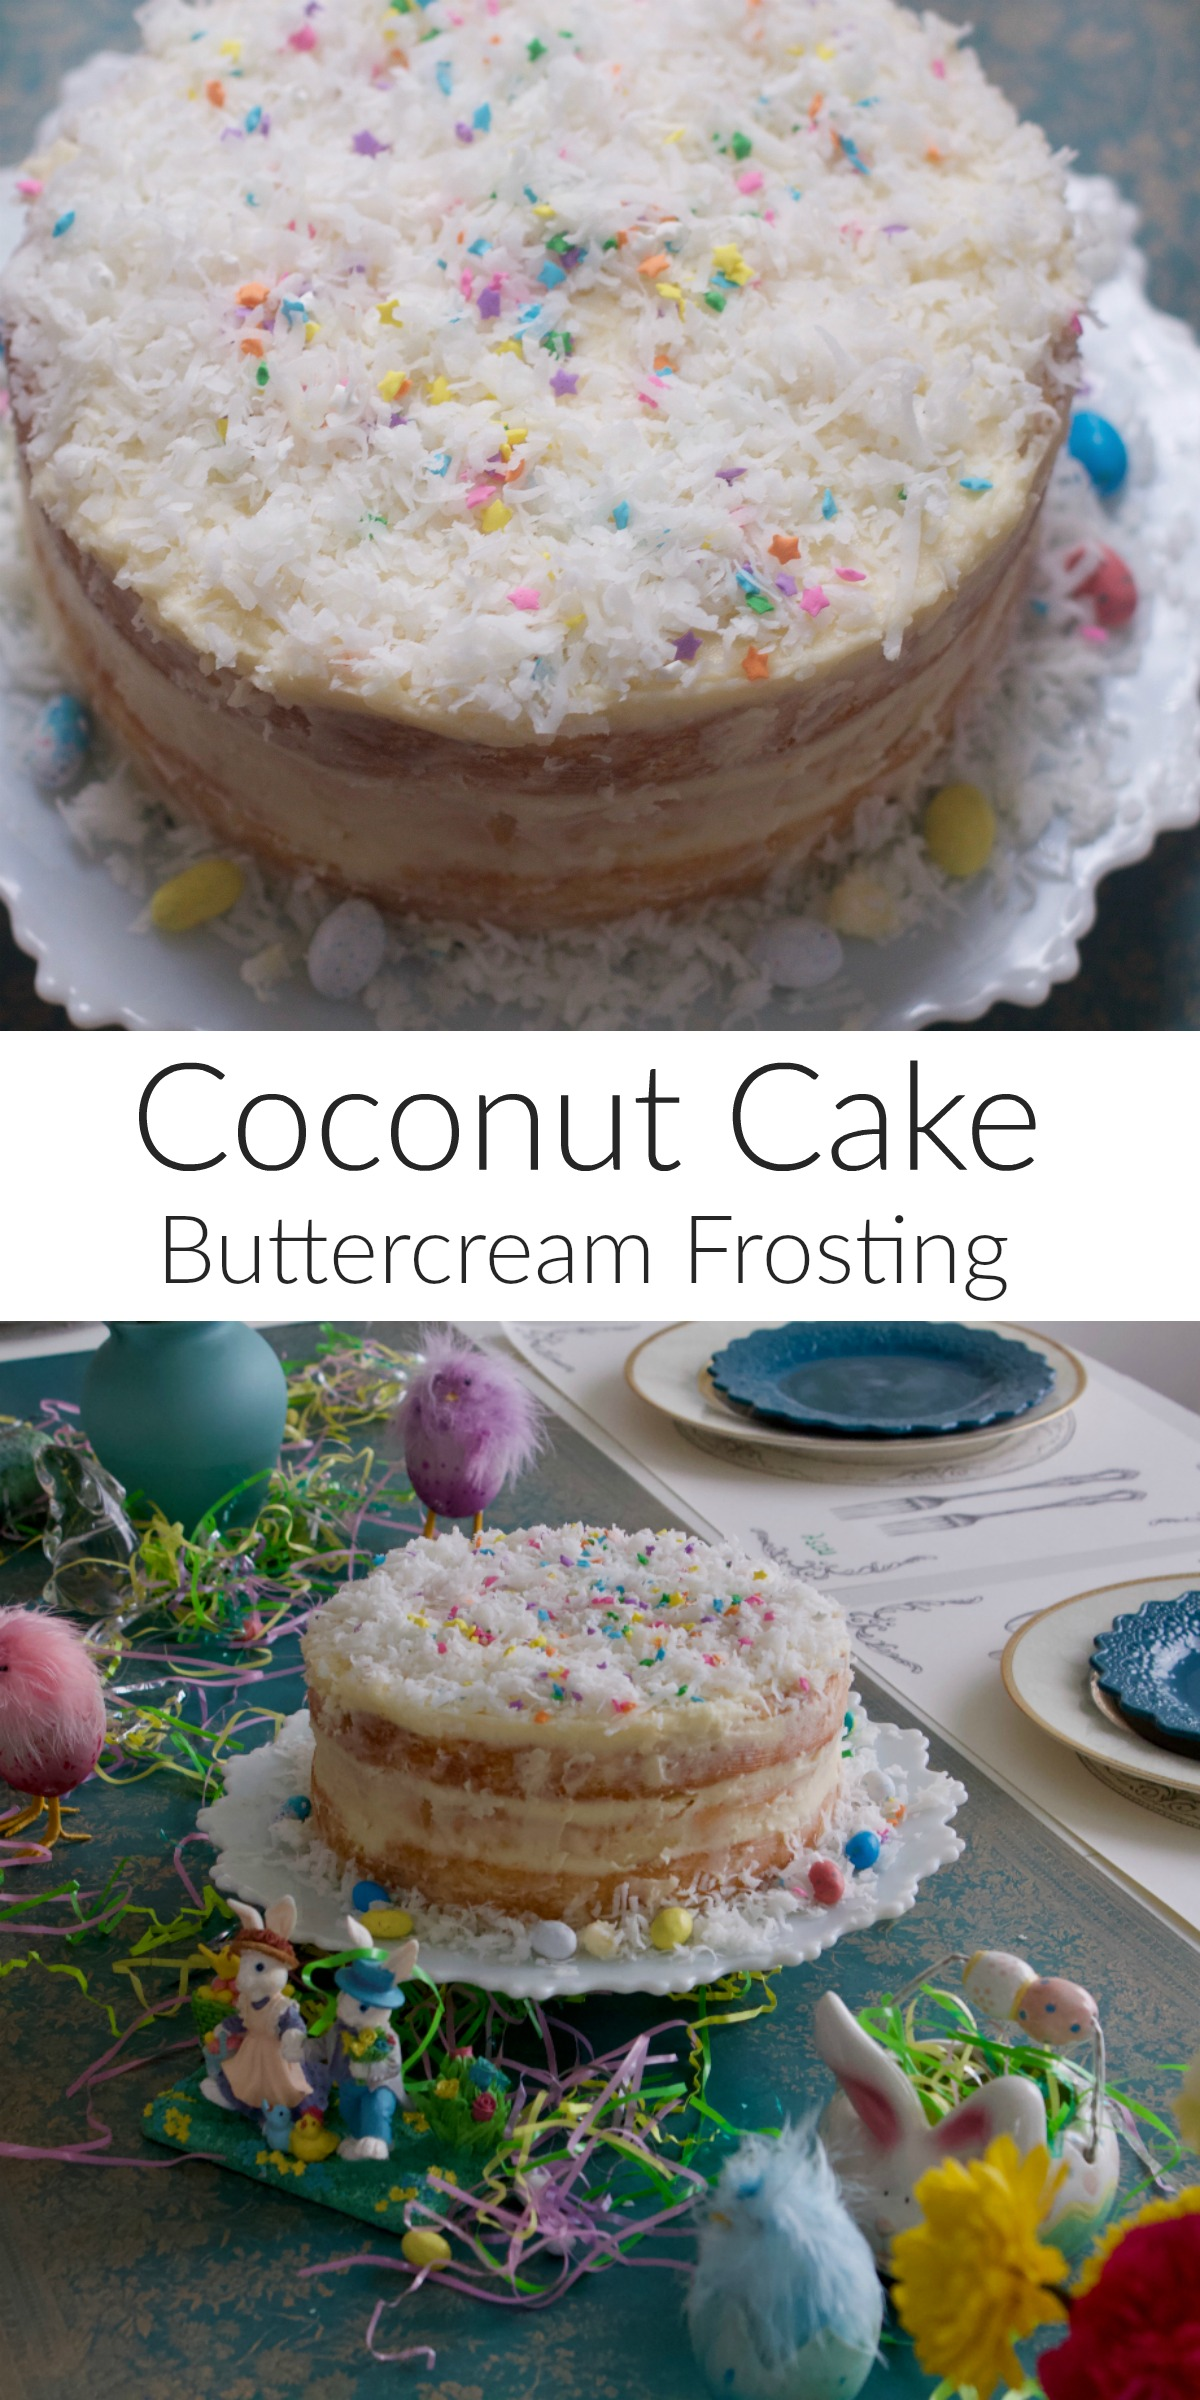 Easter Coconut Cake with Buttercream Frosting from Spinach Tiger